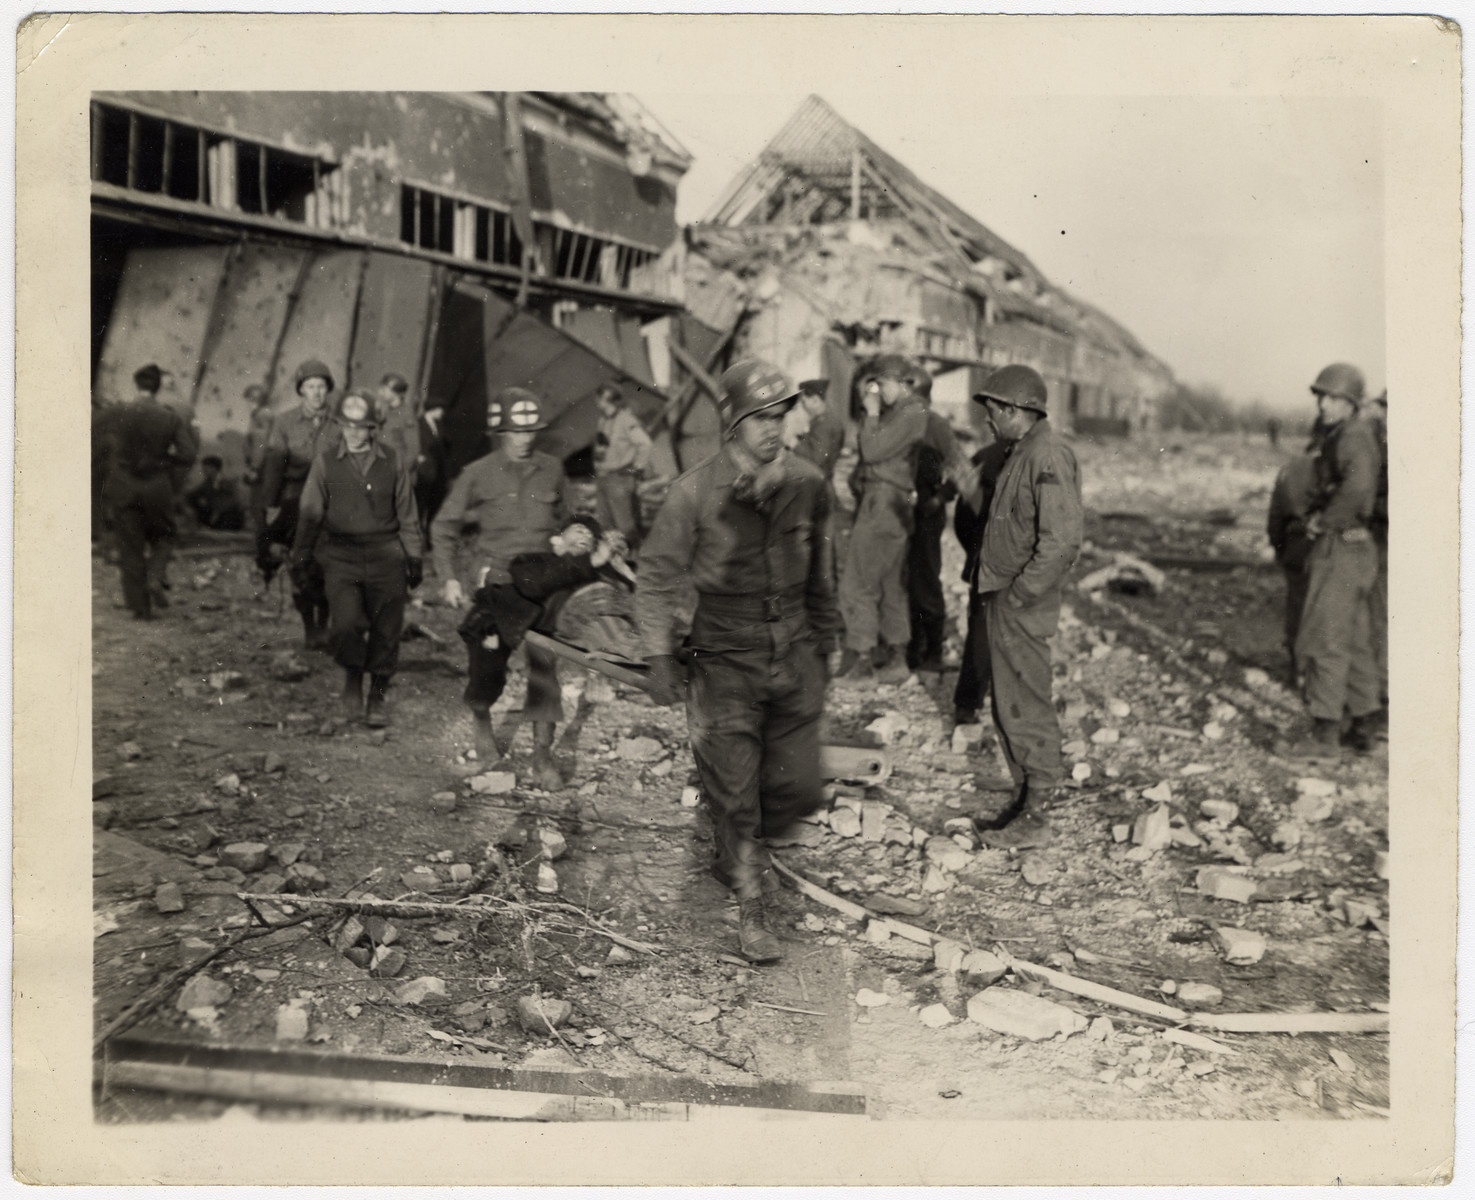 American medics evacuate survivors from the rubble of the Nordhausen concentration camp.